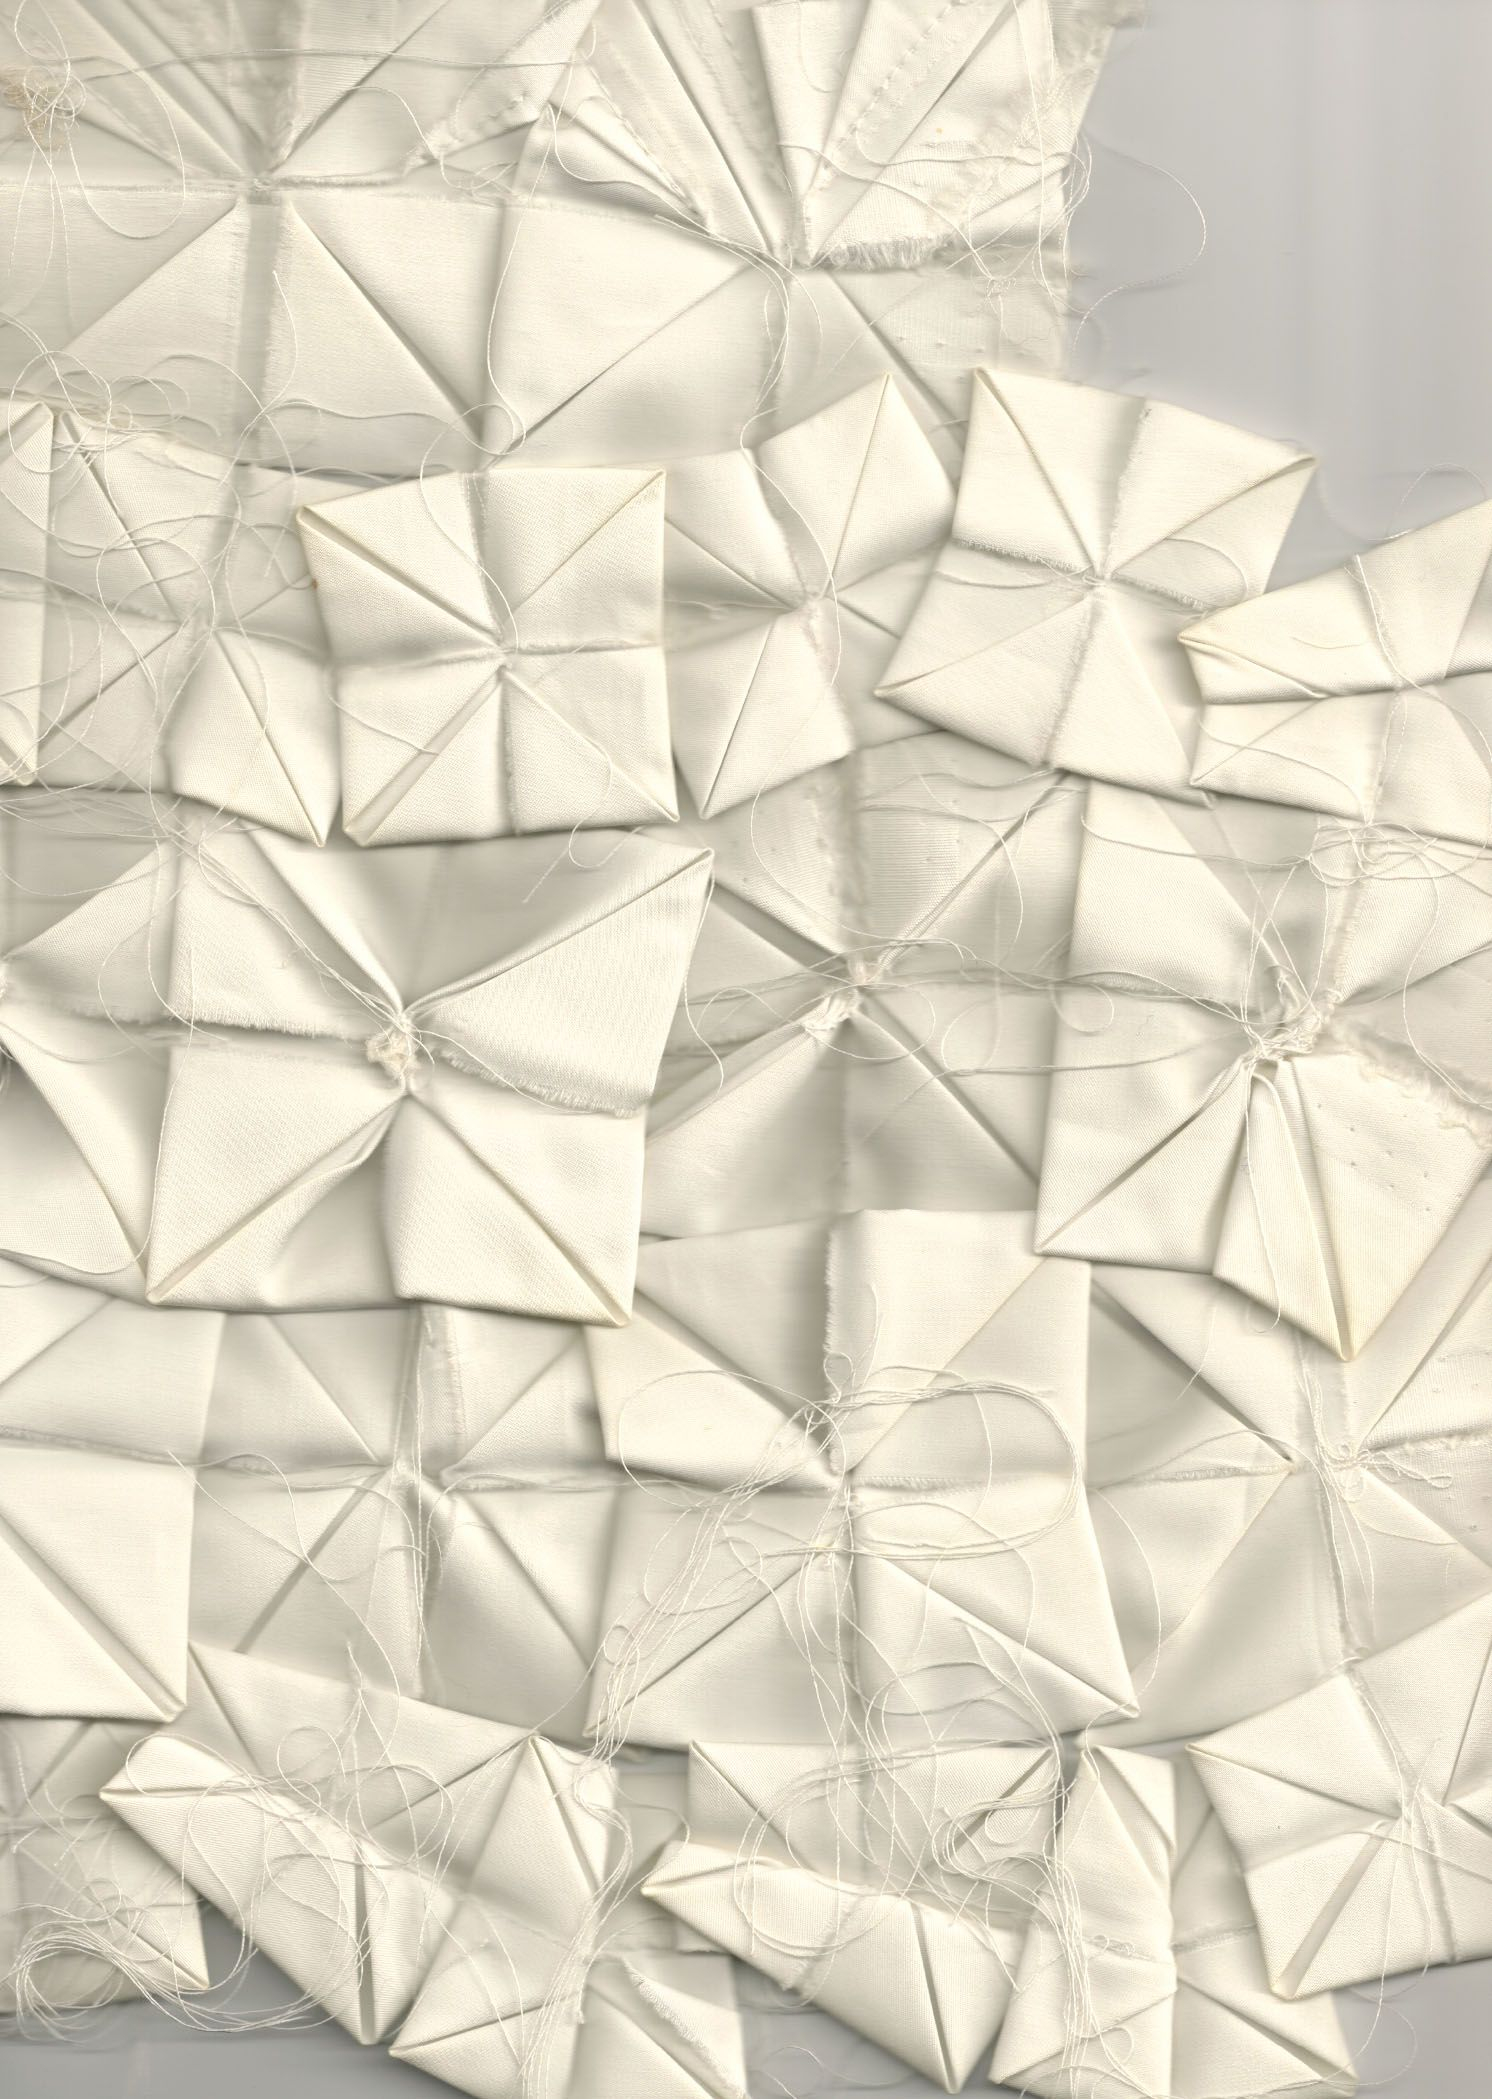 Origami Tessellations Tutorial Squares Fabric Origami With Folded Squares For The Front Panel Of A Shirt